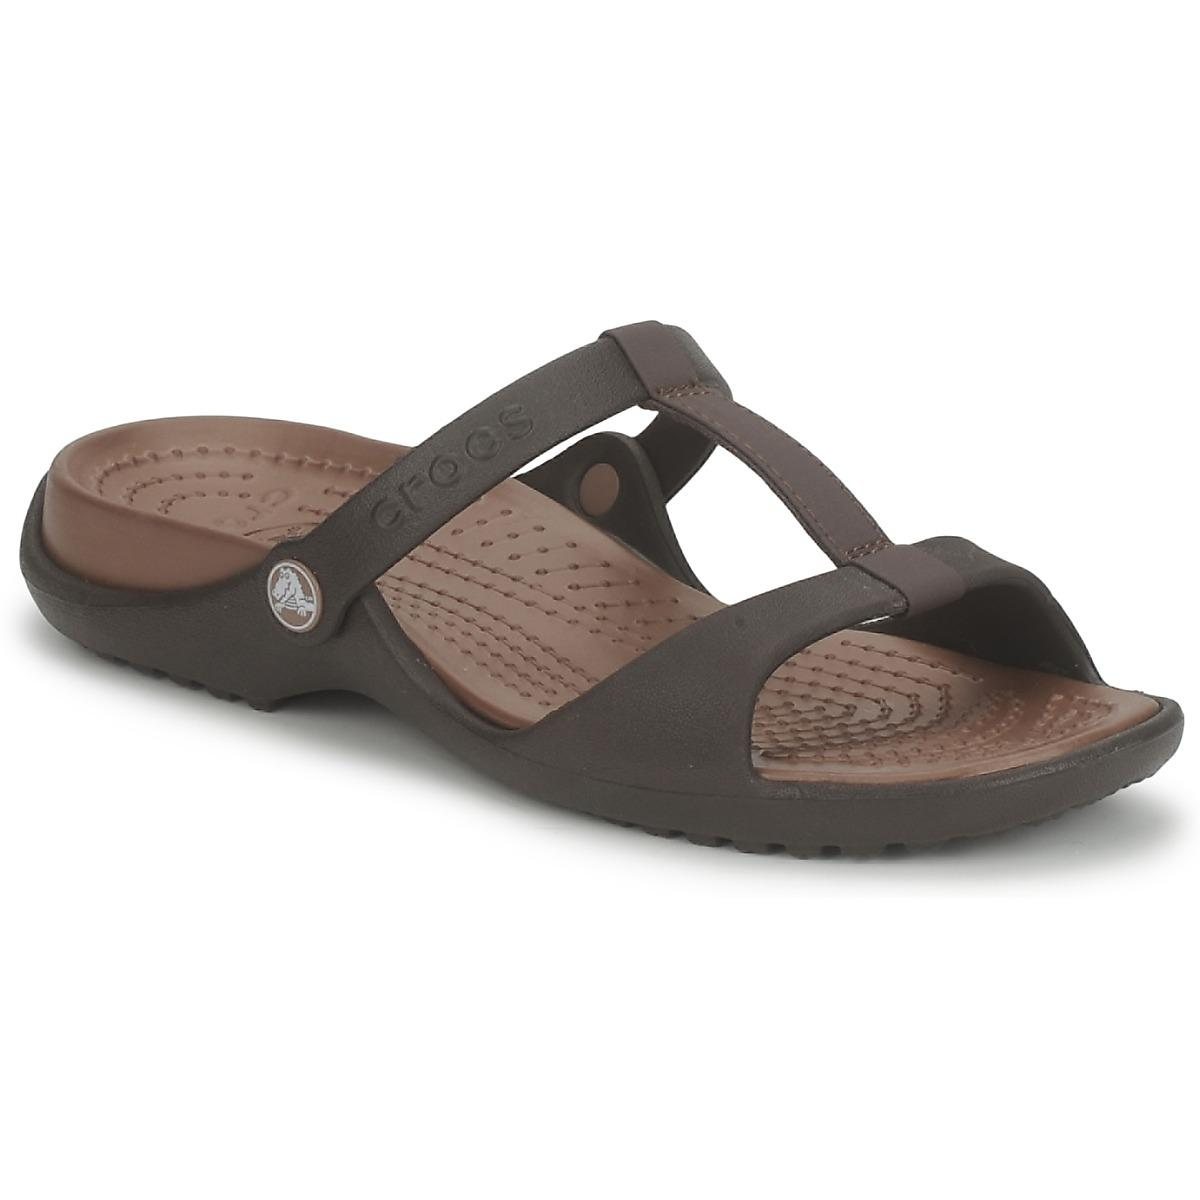 0fd42d986a87 Crocs™ Cleo Iii Mules   Casual Shoes in Brown - Lyst